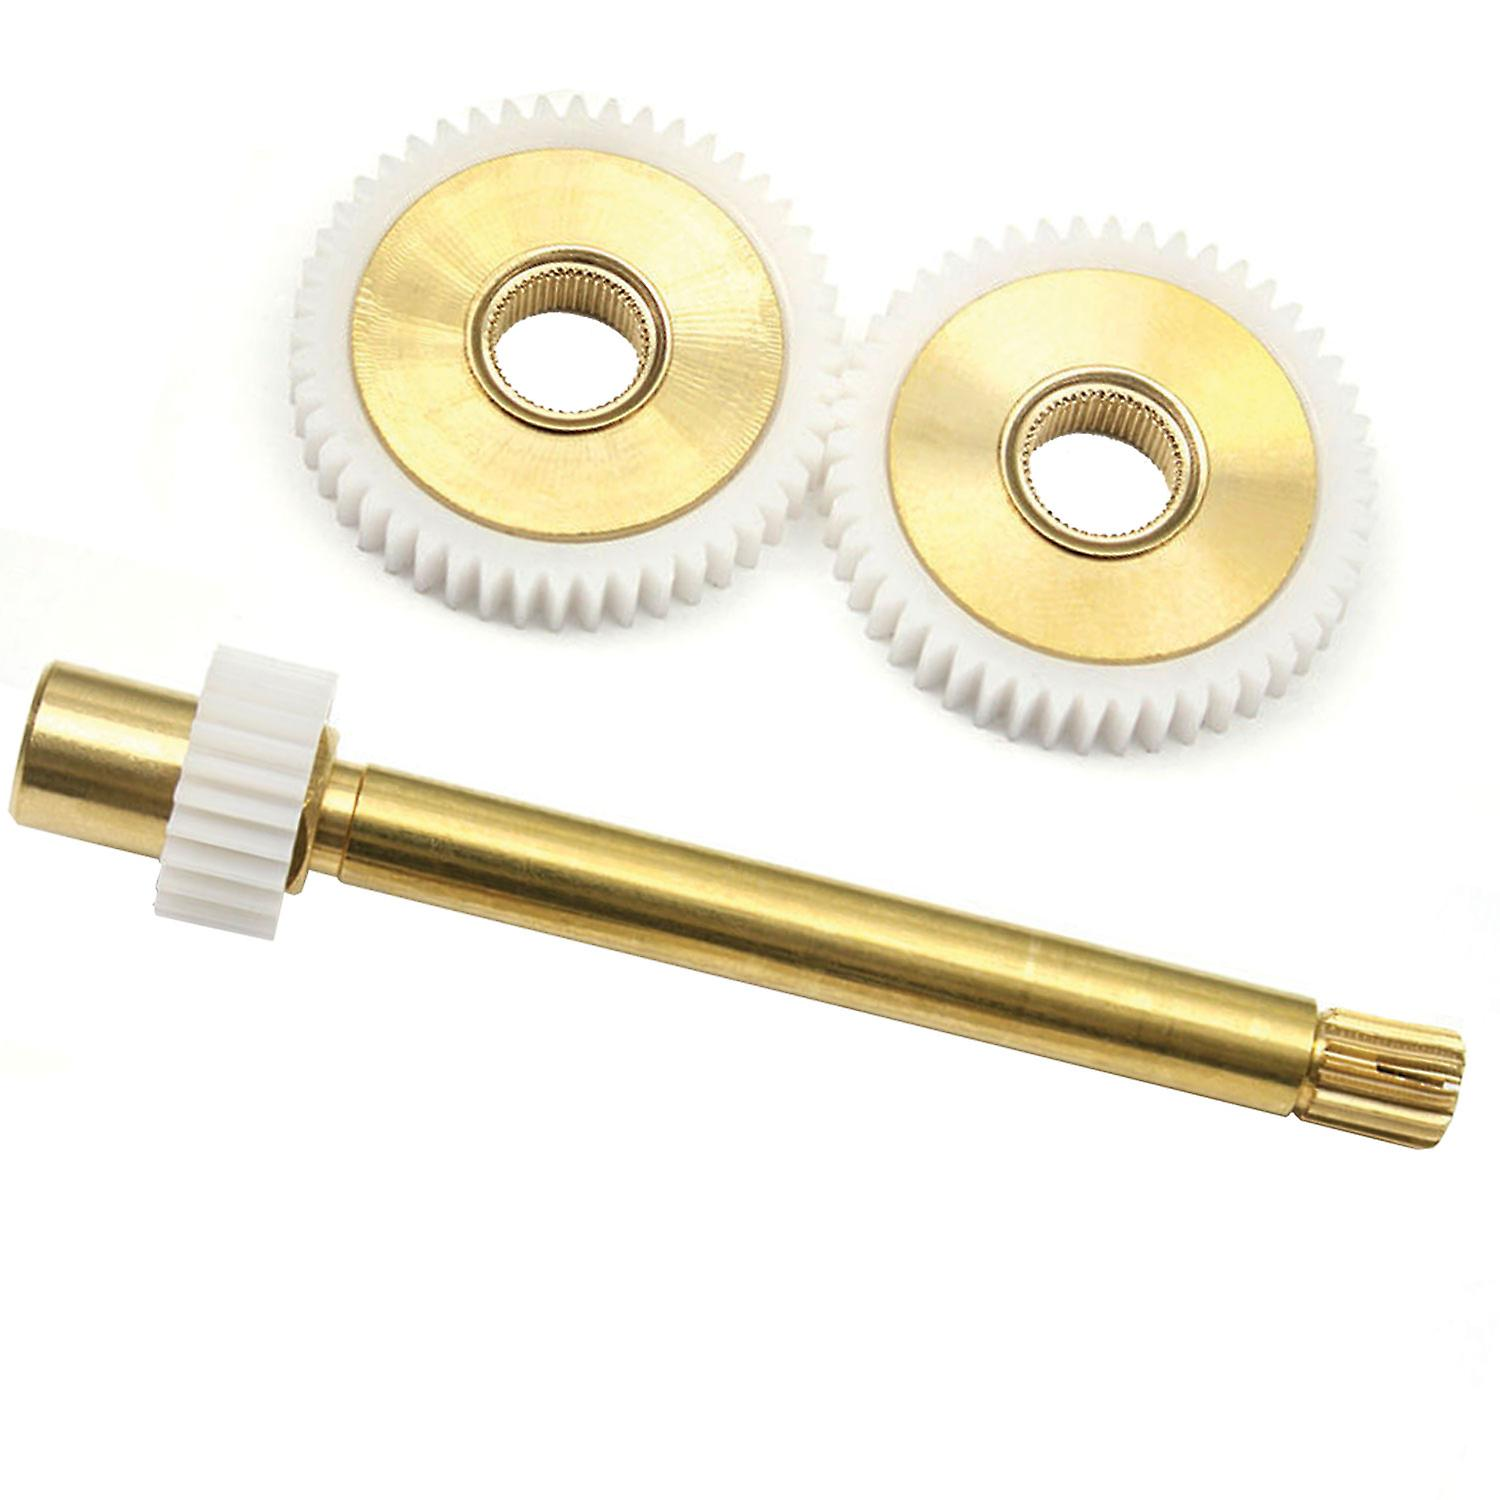 A963067NU Ideal Standard / Trevi Therm 84mm Spindle Gear Box Cogs Assembly (Includes 2 Gears and Spindle Gear)